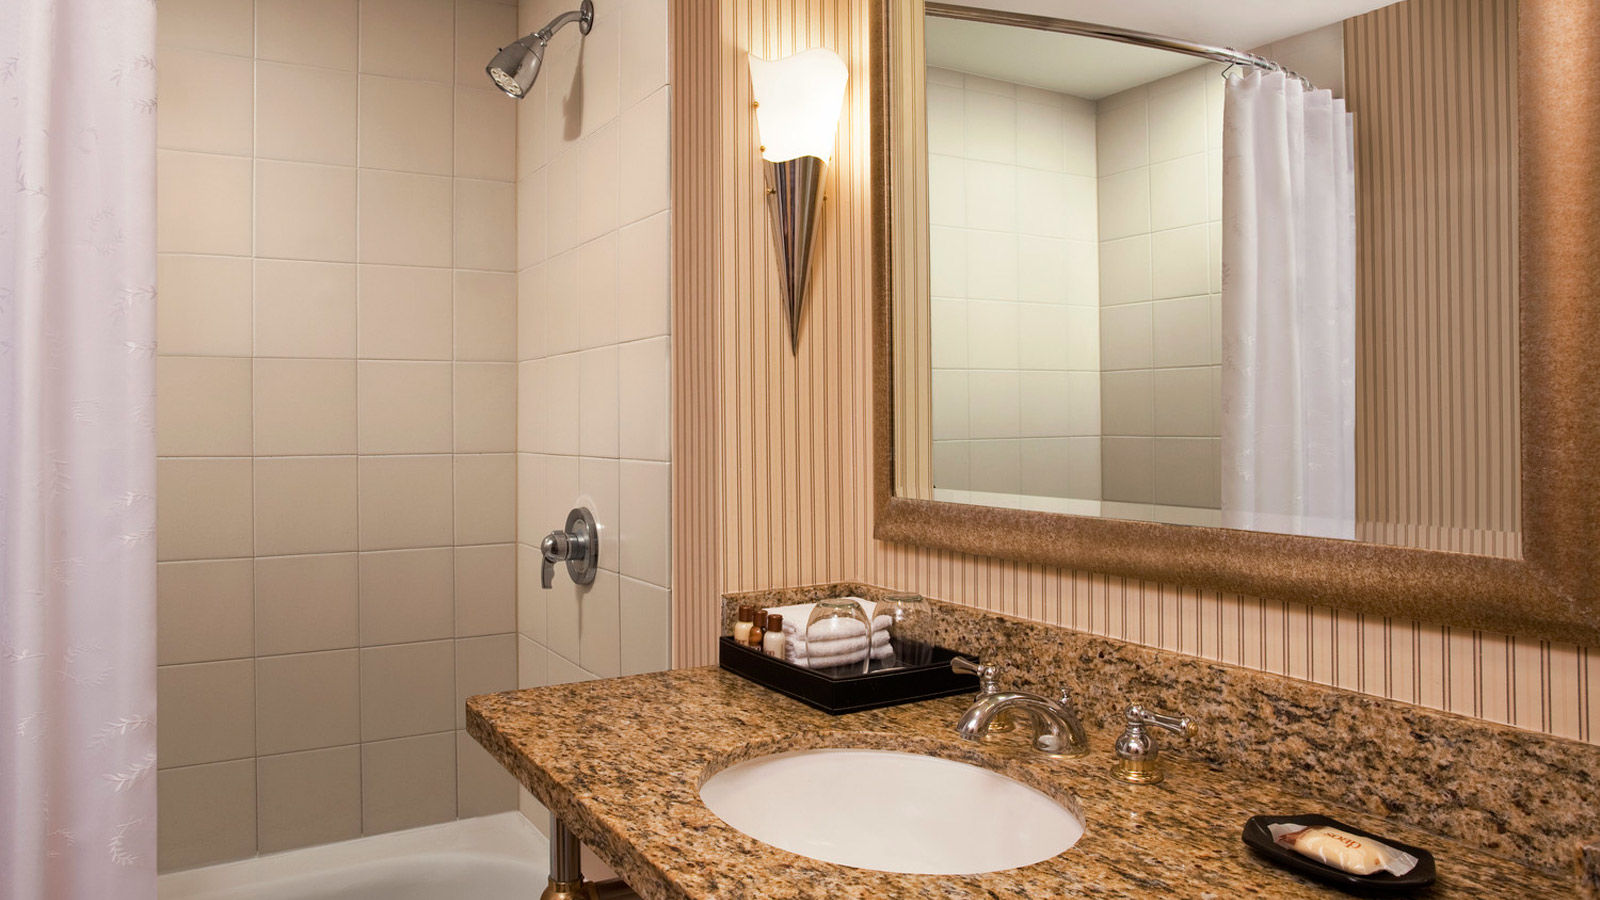 Sheraton Atlantic City Hotel Guest Room Amenities | Bathroom